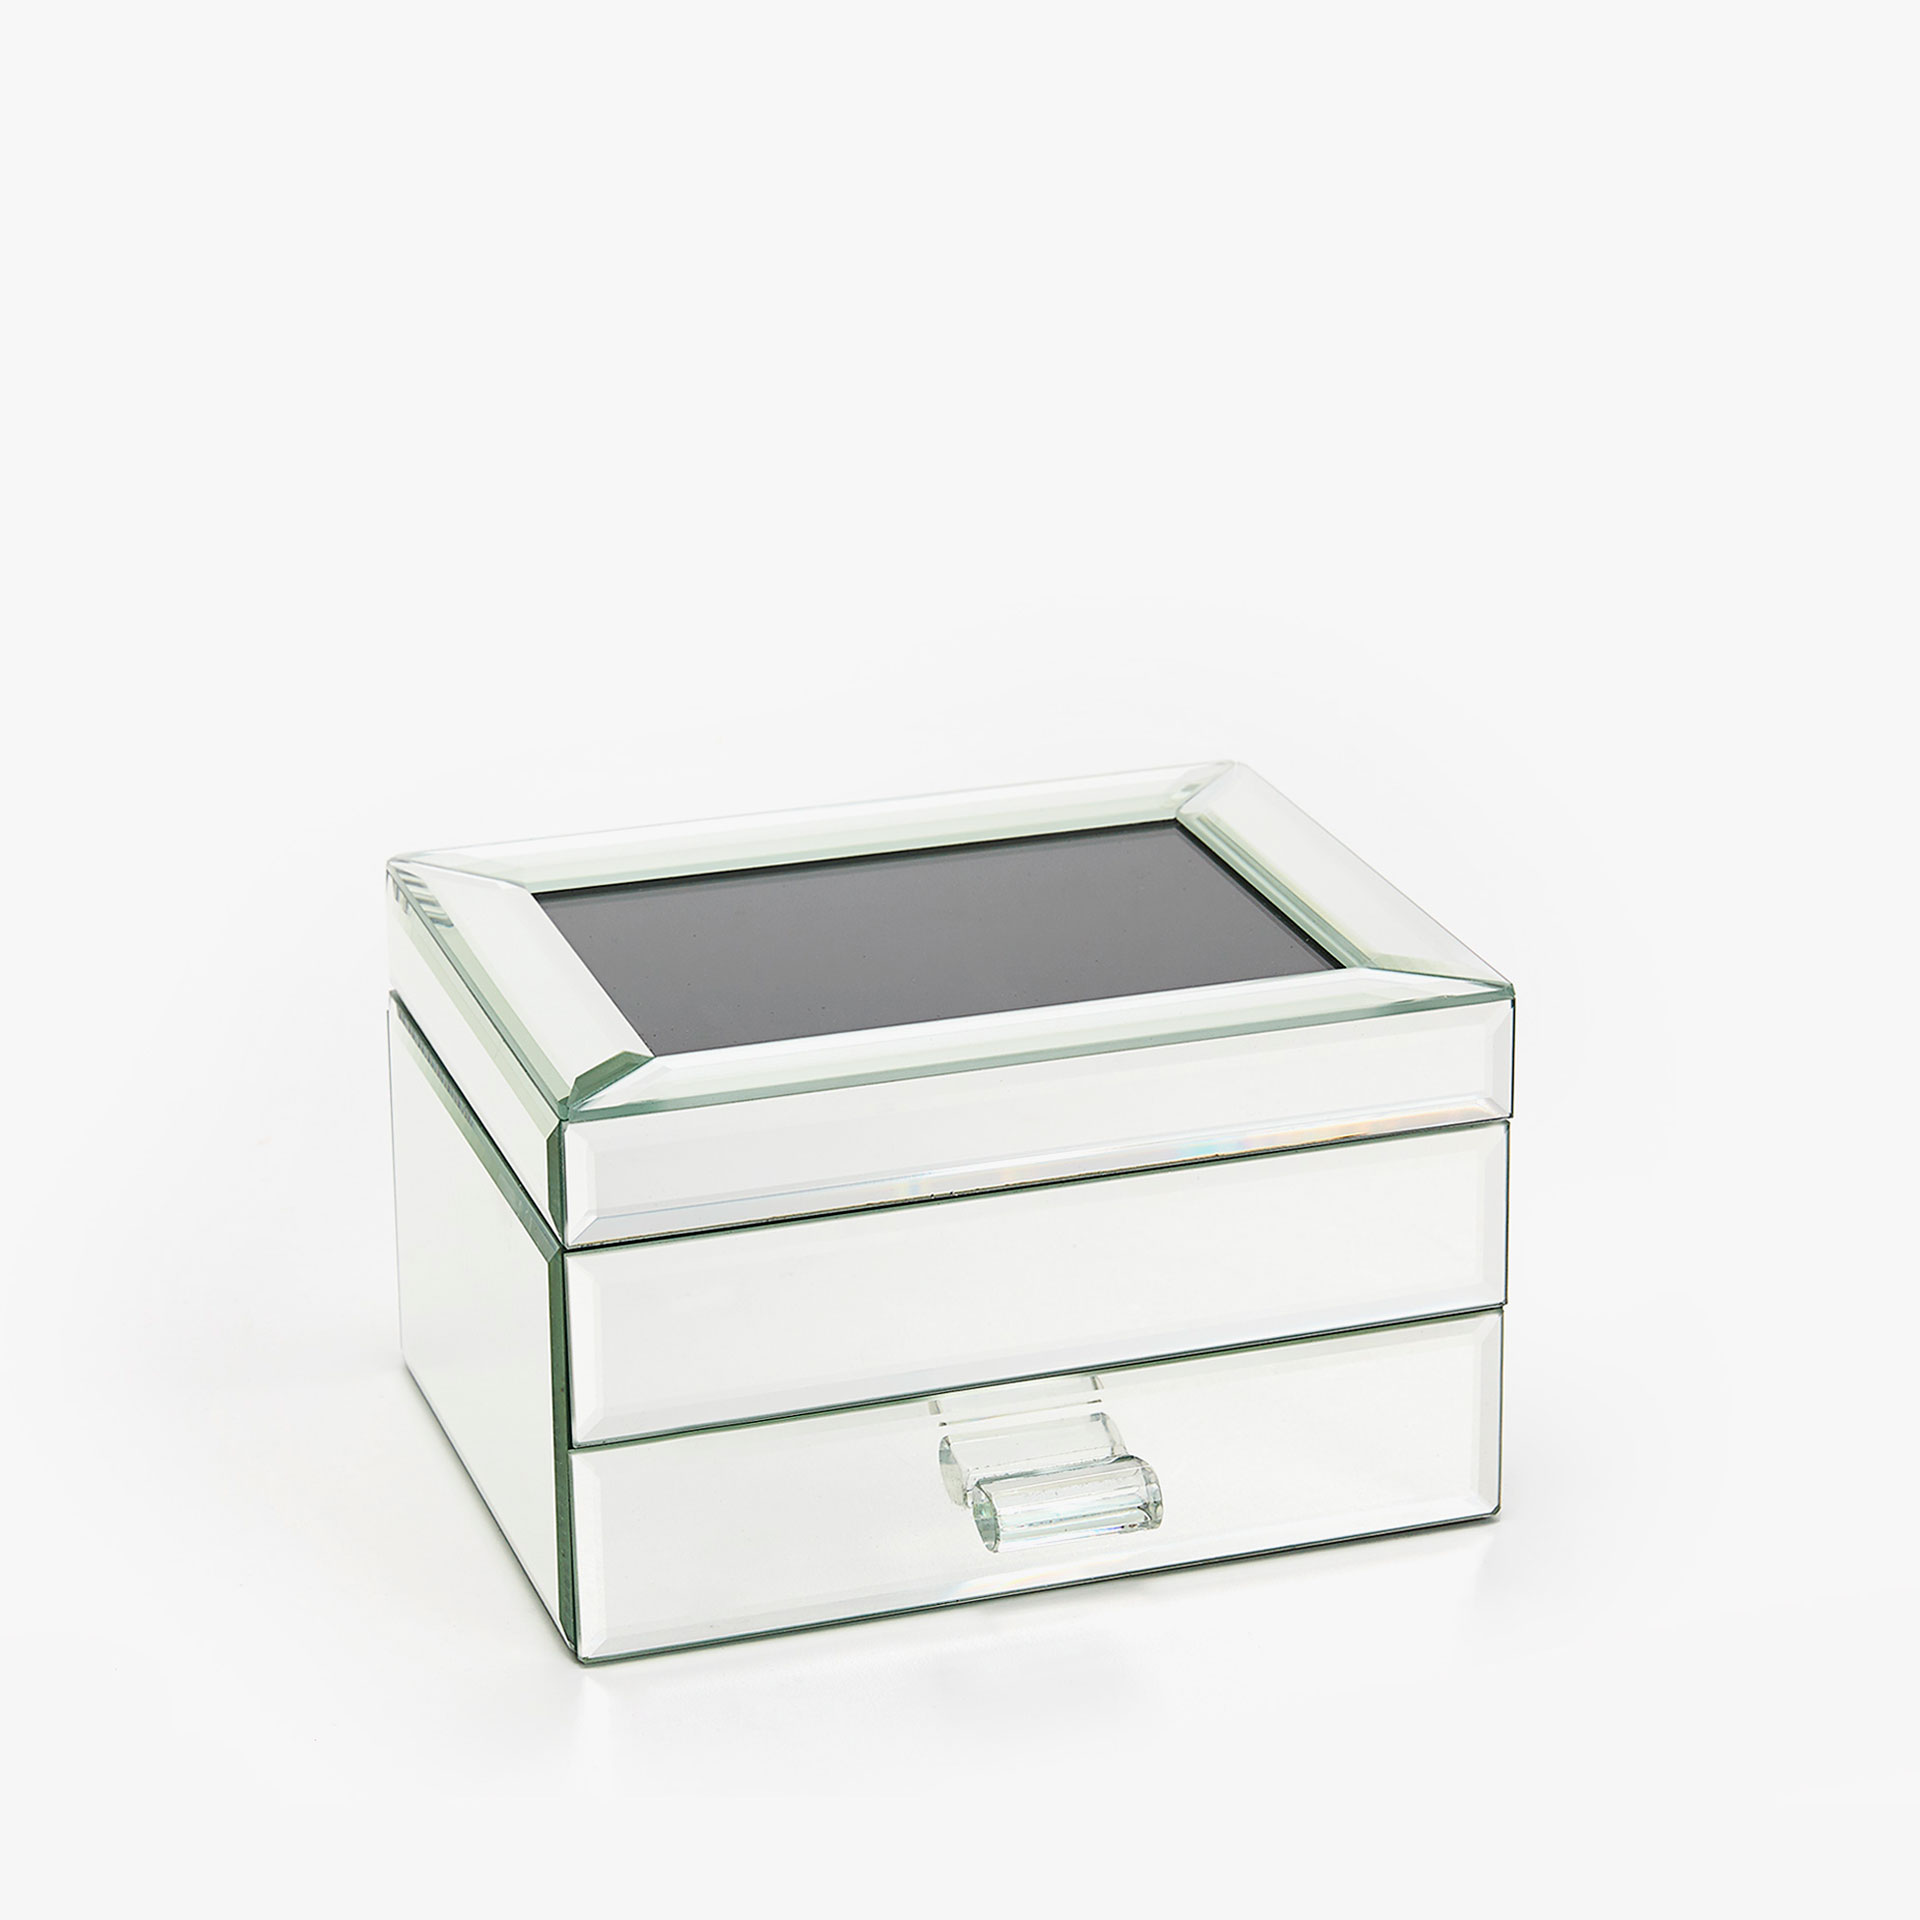 + Image 1 Of The Product MIRRORED JEWELLERY BOX WITH COMPARTMENTS